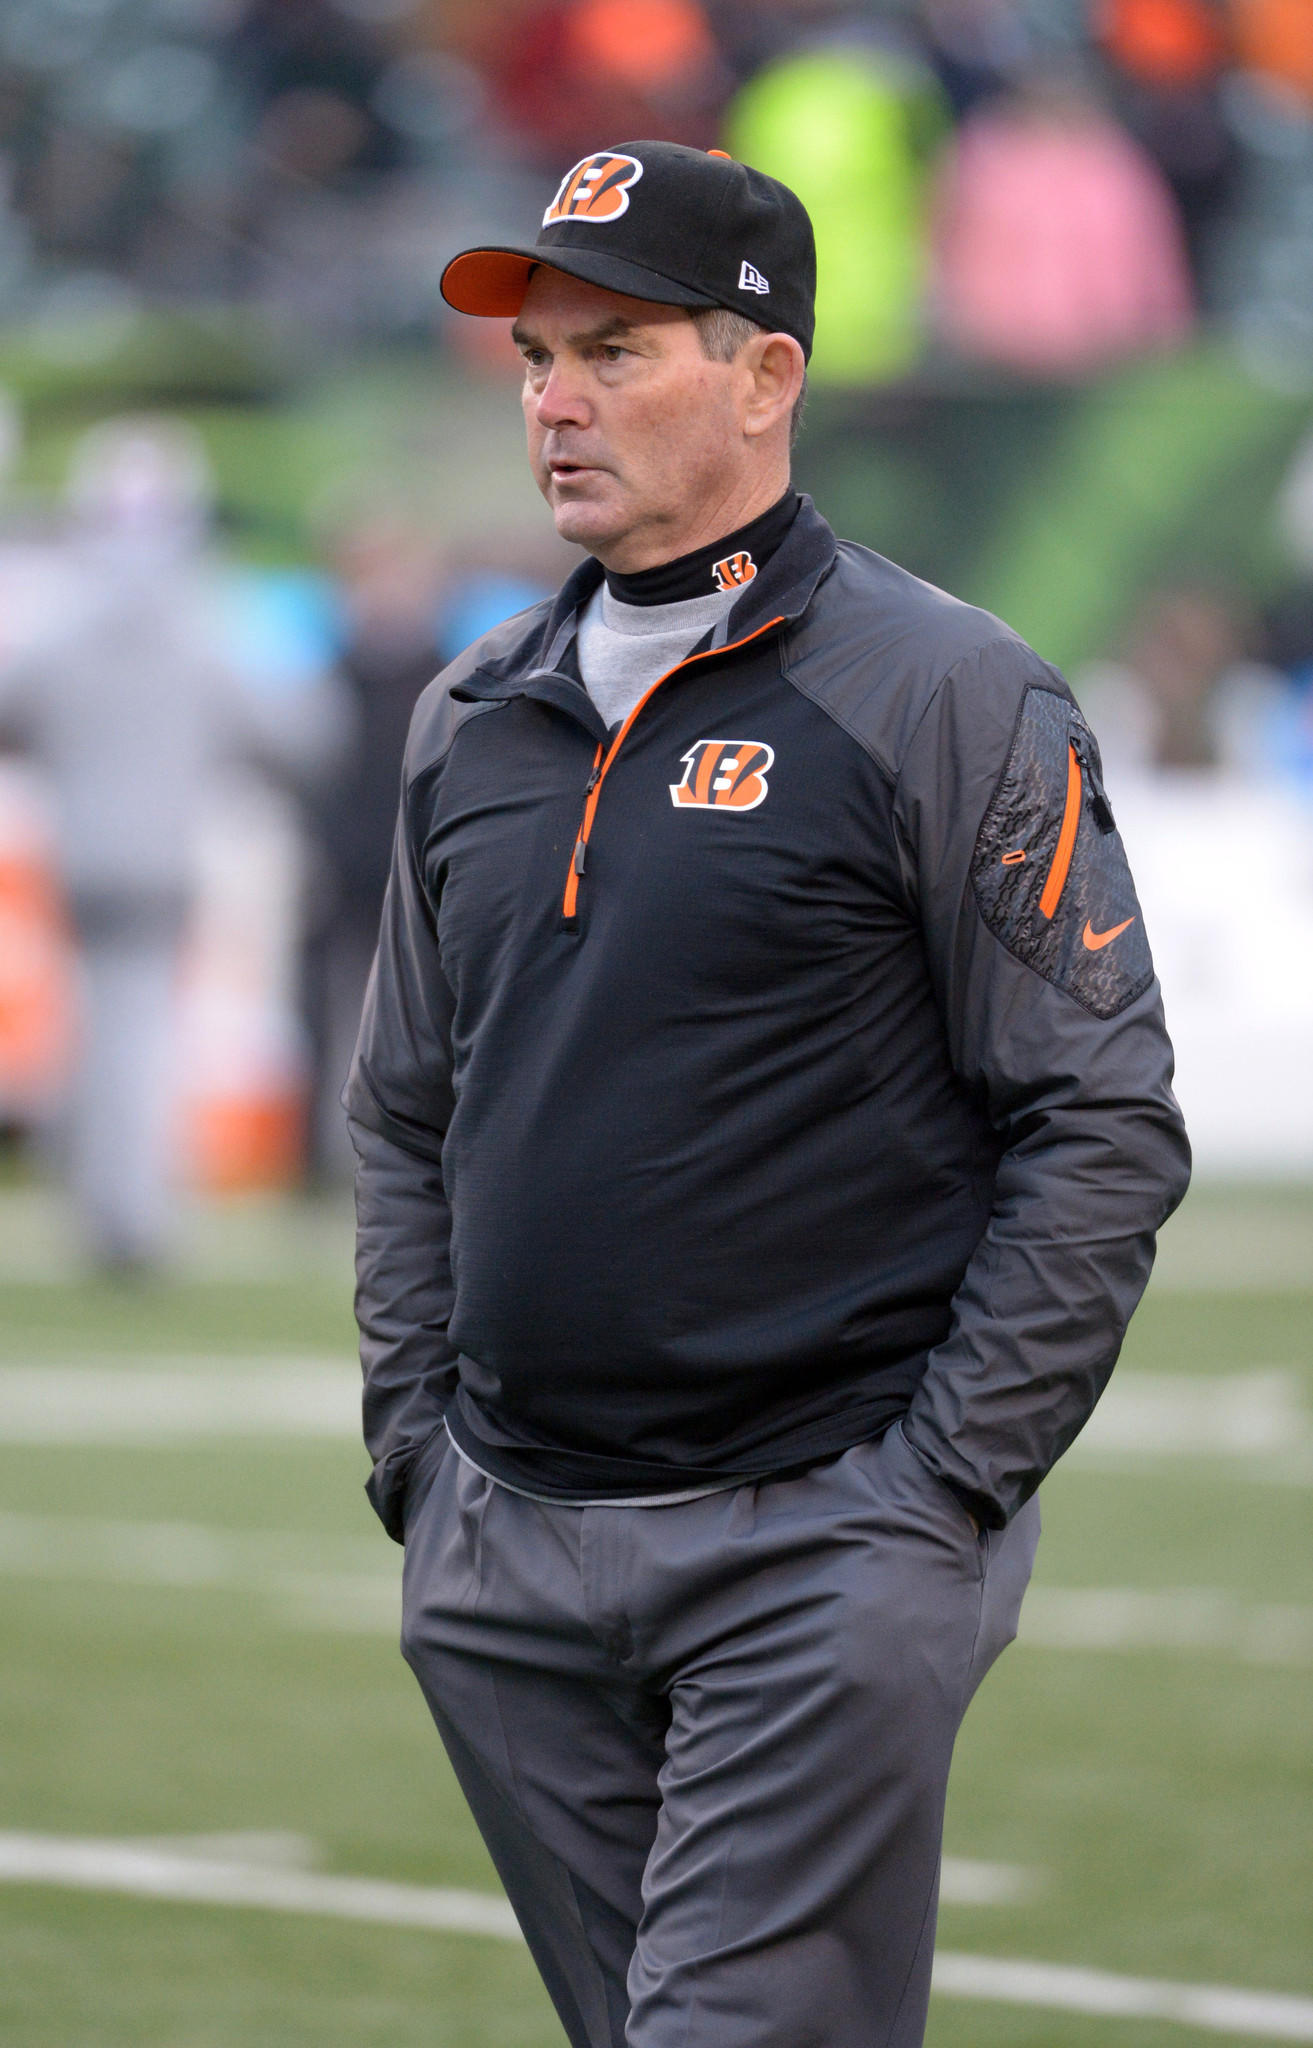 Cincinnati Bengals defensive coordinator Mike Zimmer before the 2013 AFC wild card playoff football game against the San Diego Chargers.